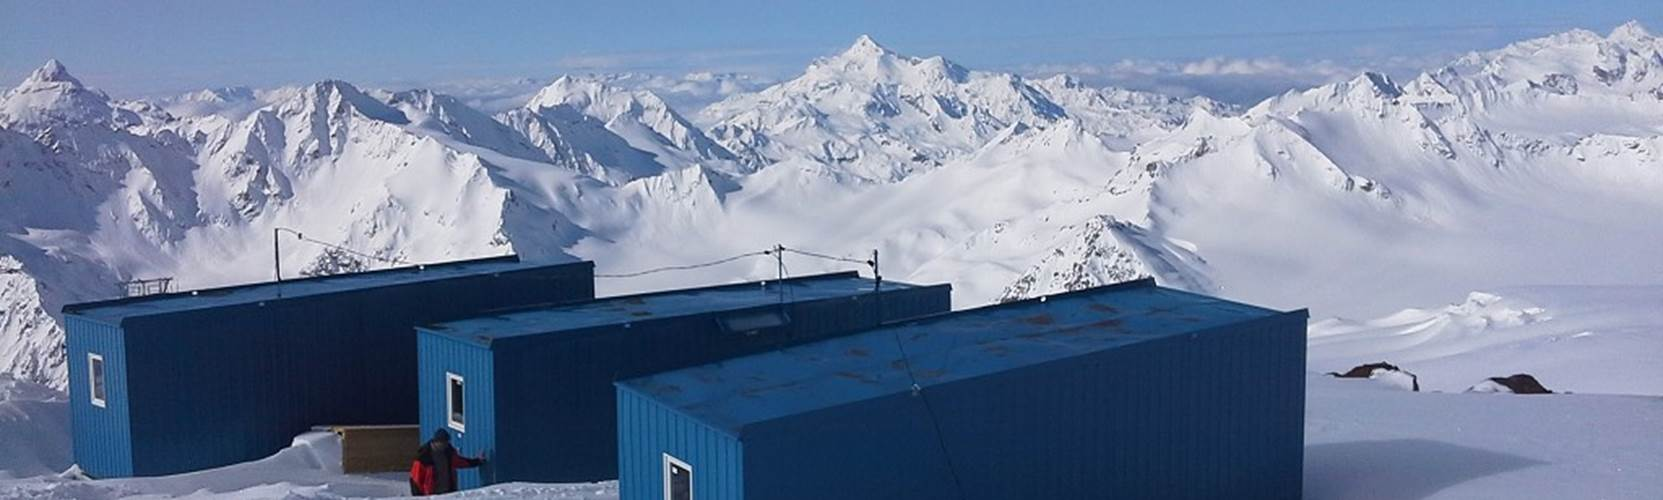 Huts on Mount Elbrus at 3900 metres